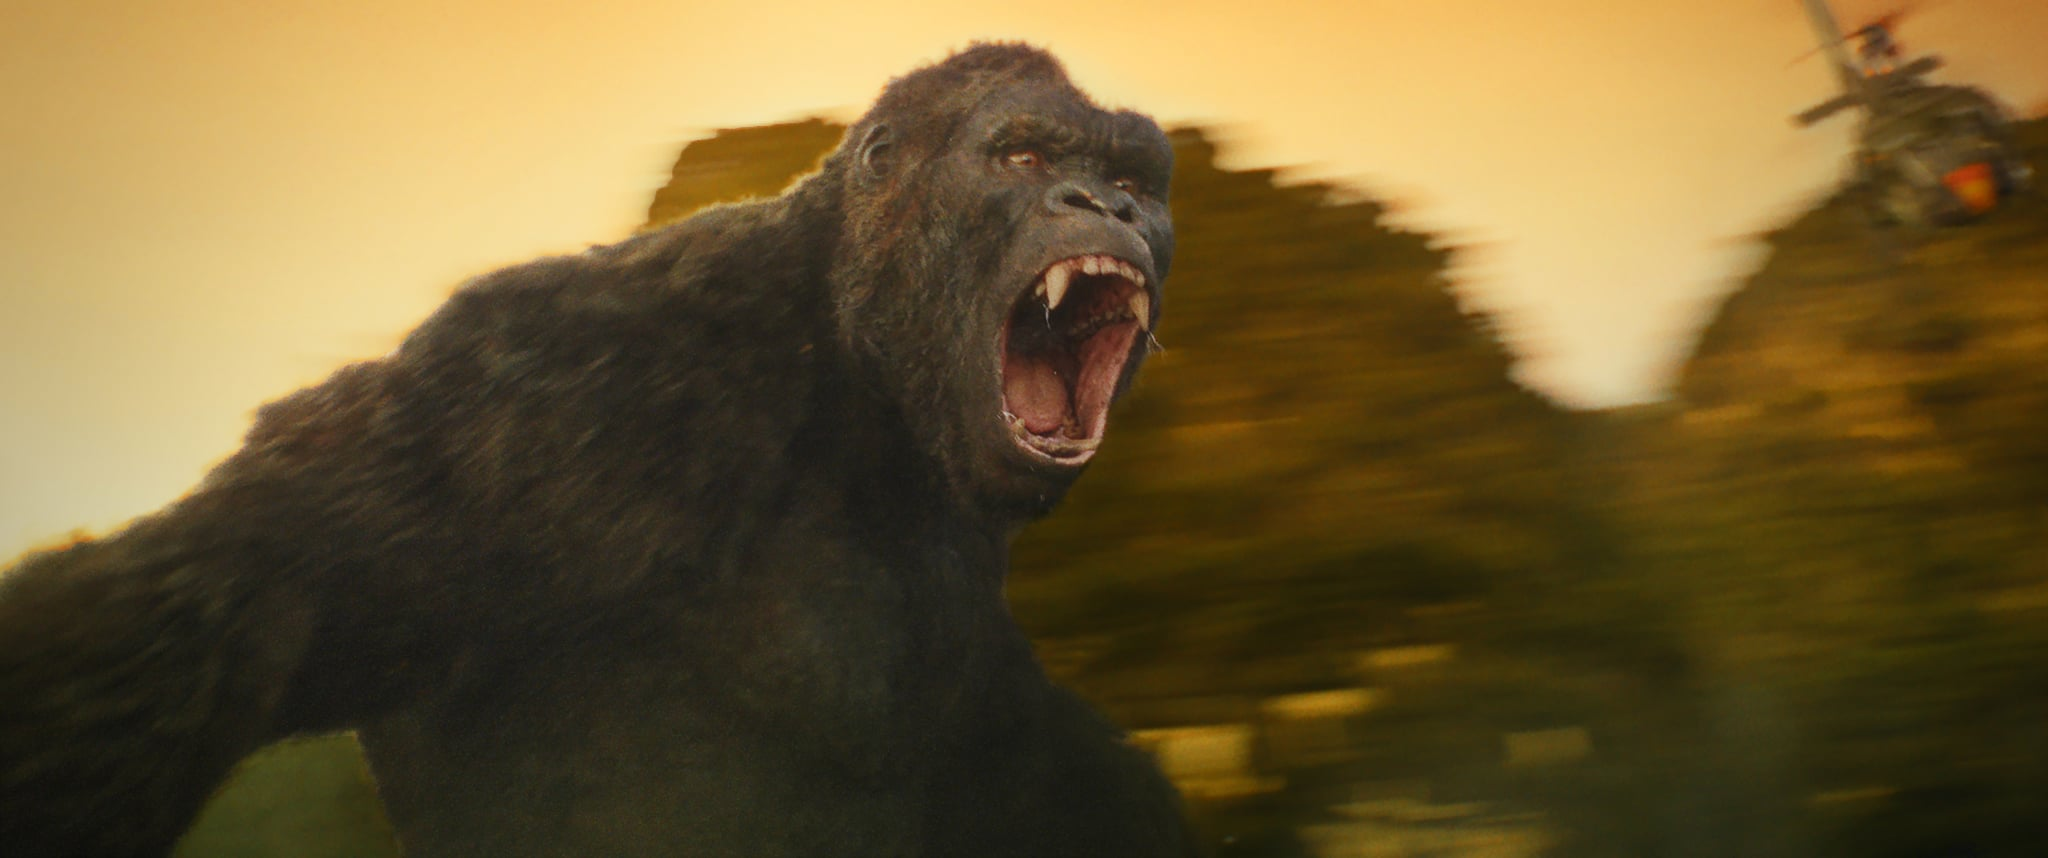 KONG: SKULL ISLAND, Kong, 2017. Warner Bros. Pictures/courtesy Everett Collection